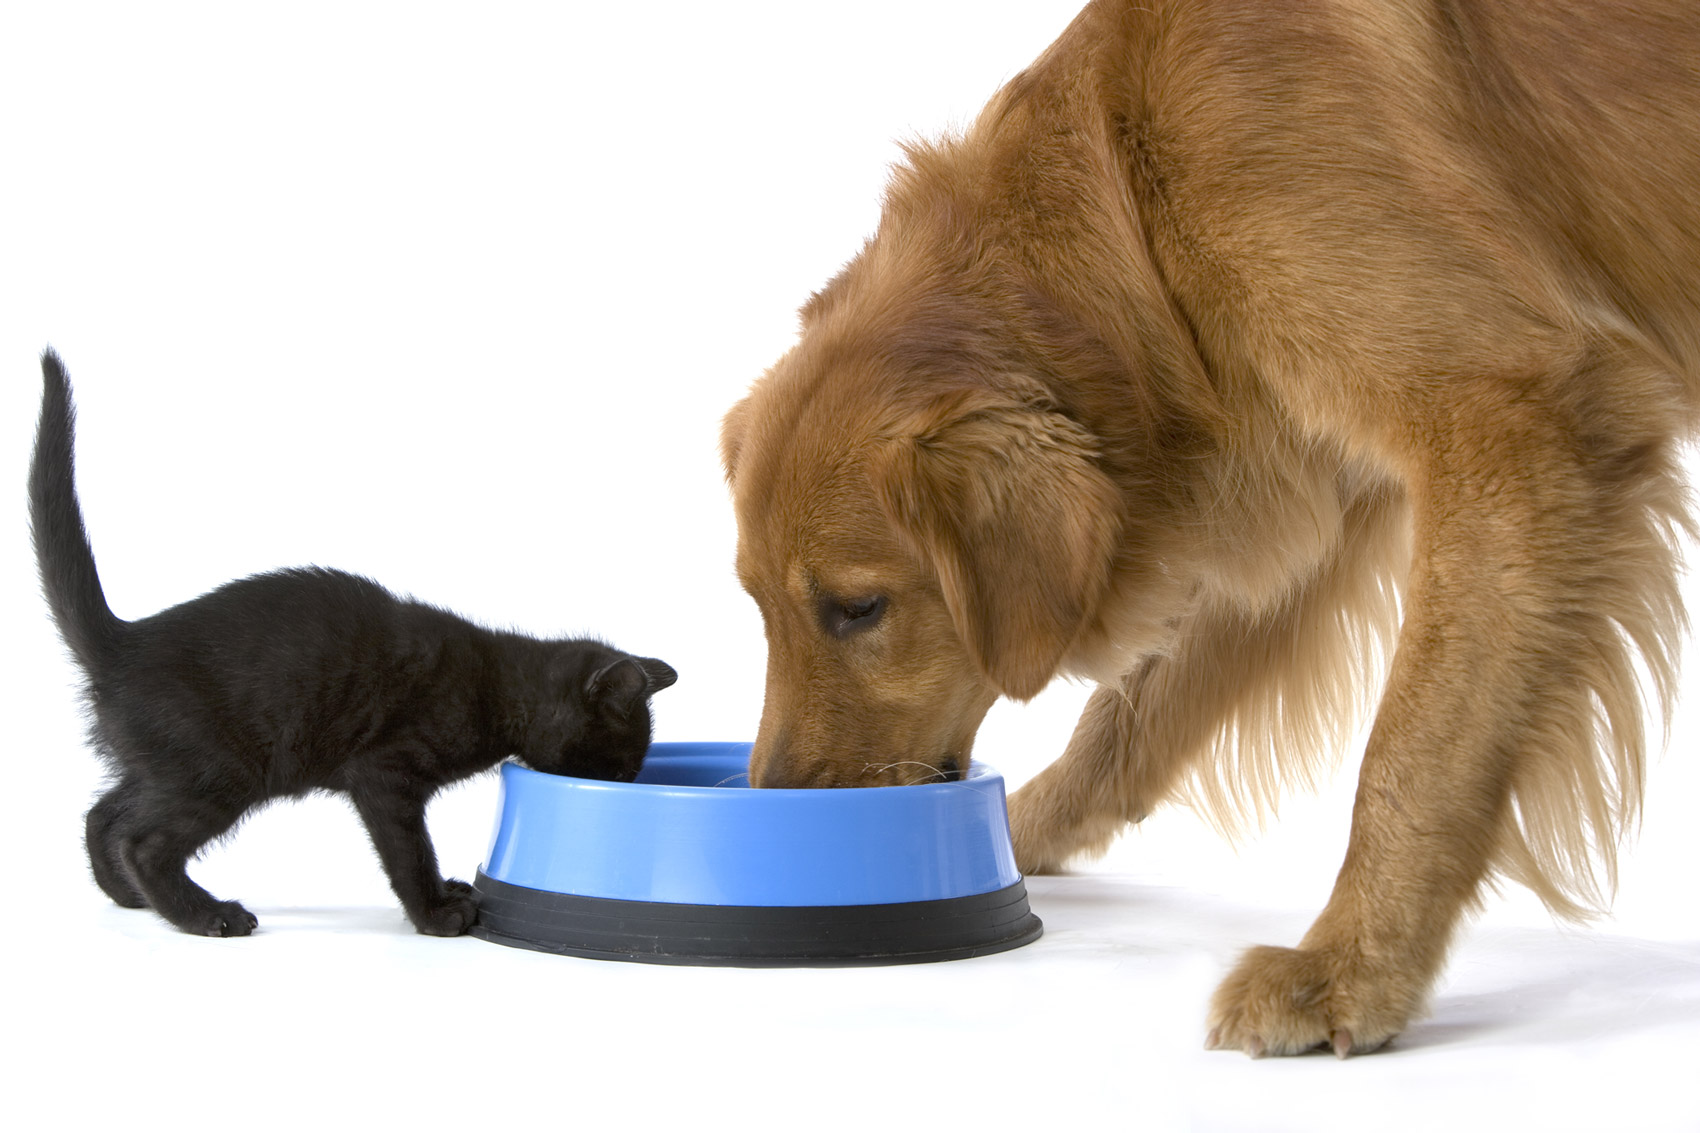 dog-and-cat-eating